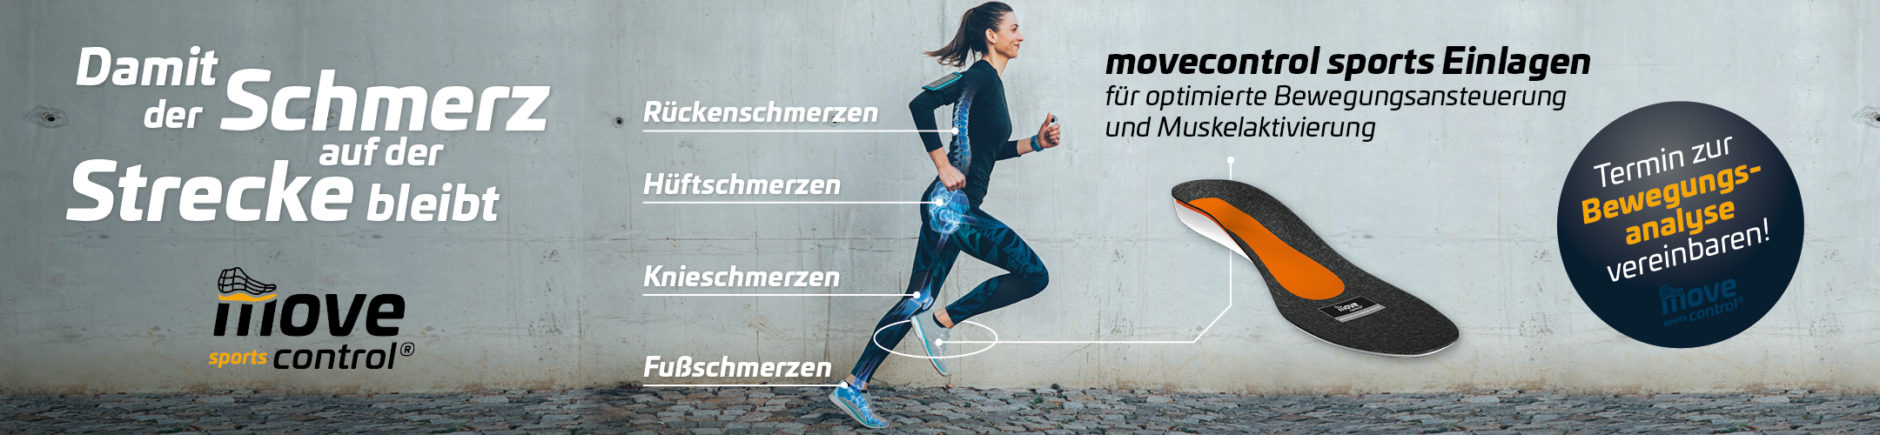 movecontrol sports einlagen